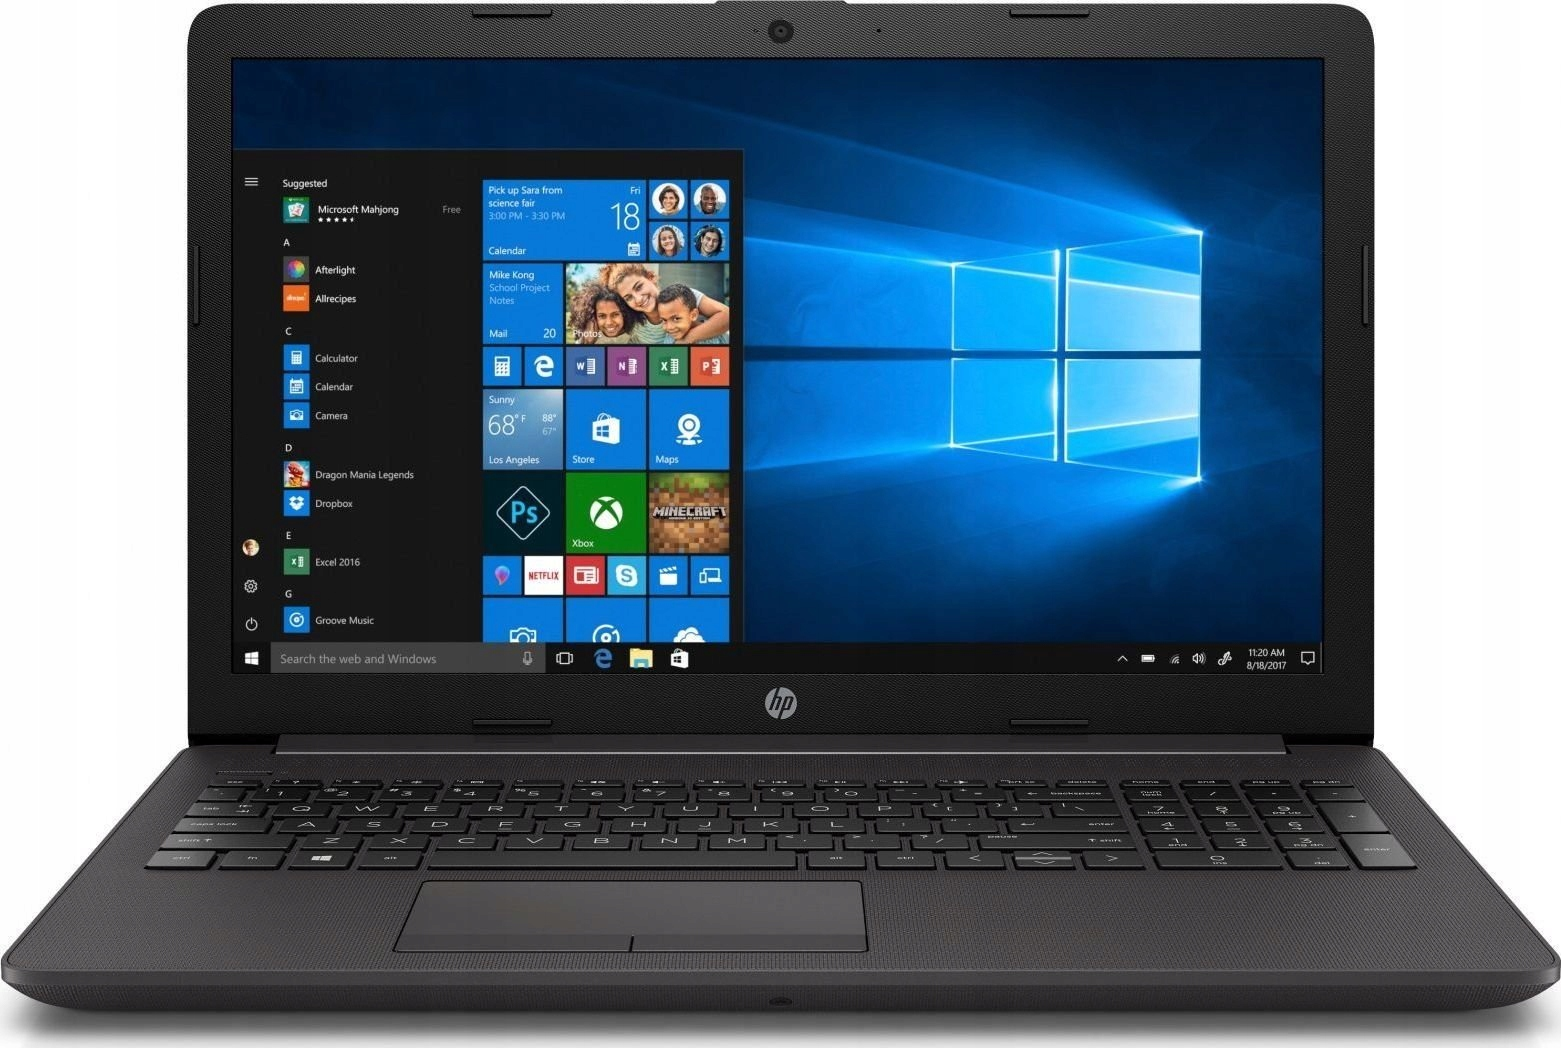 Komputer Laptop Hp Ryzen 3500U Ssd 256GB 16GB DDR4